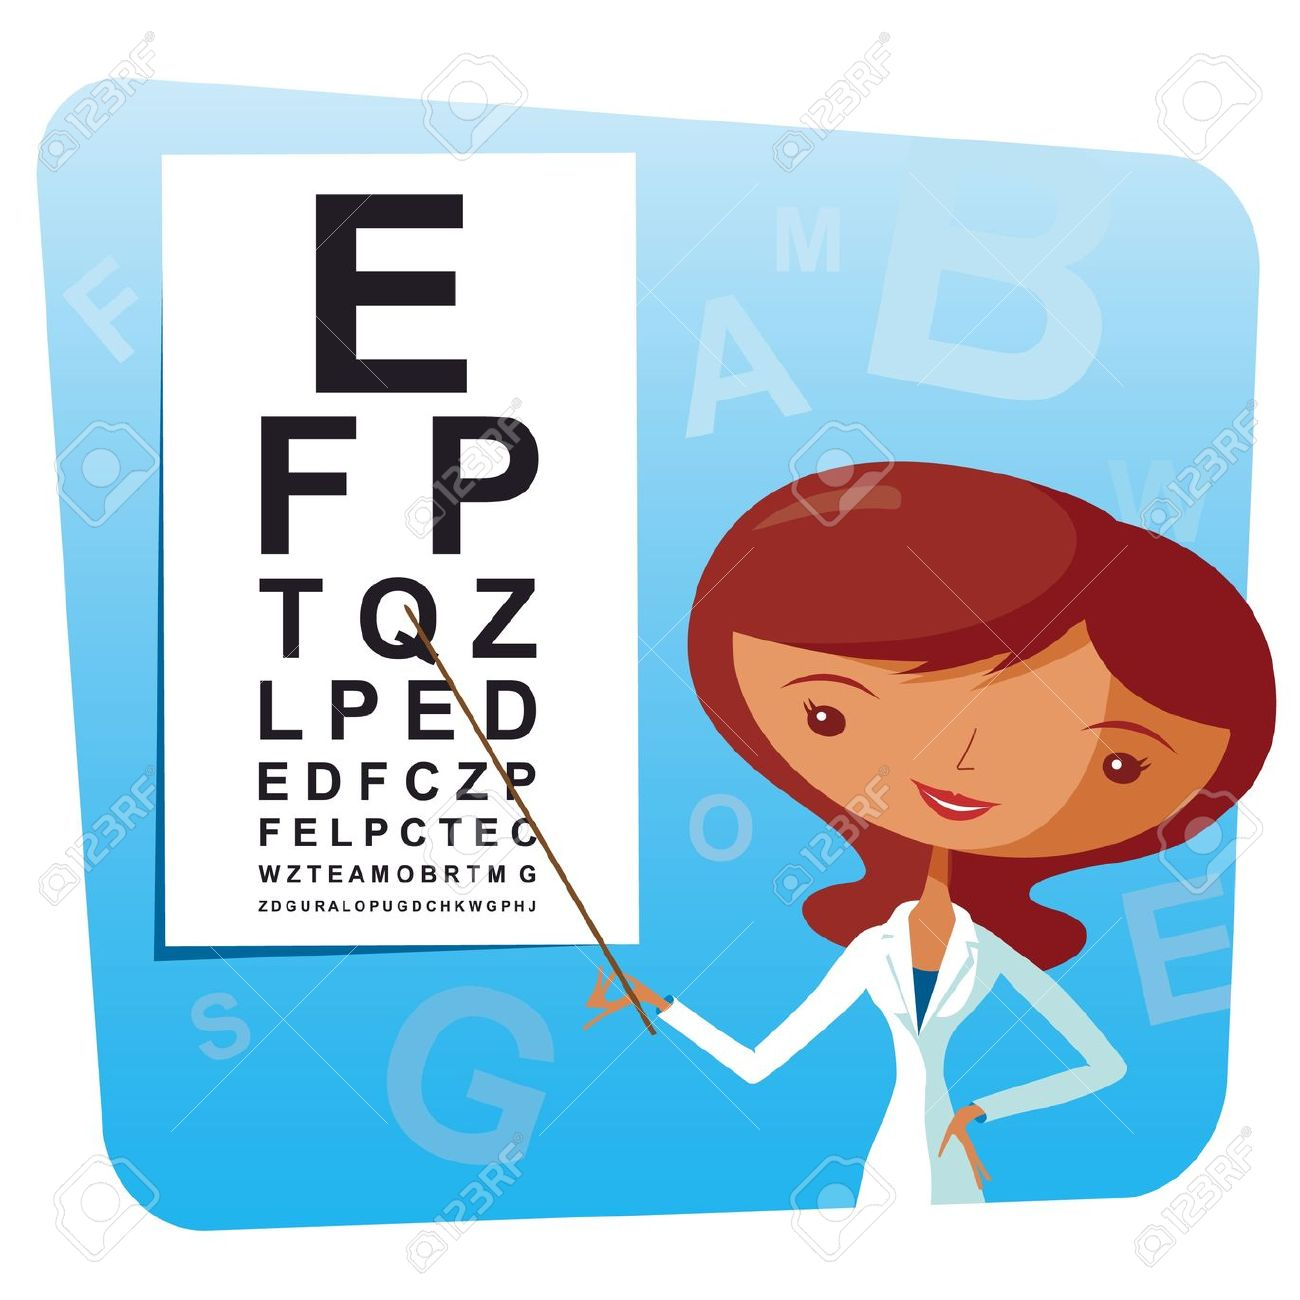 Eye doctor clipart image free library 21+ Eye Doctor Clipart | ClipartLook image free library